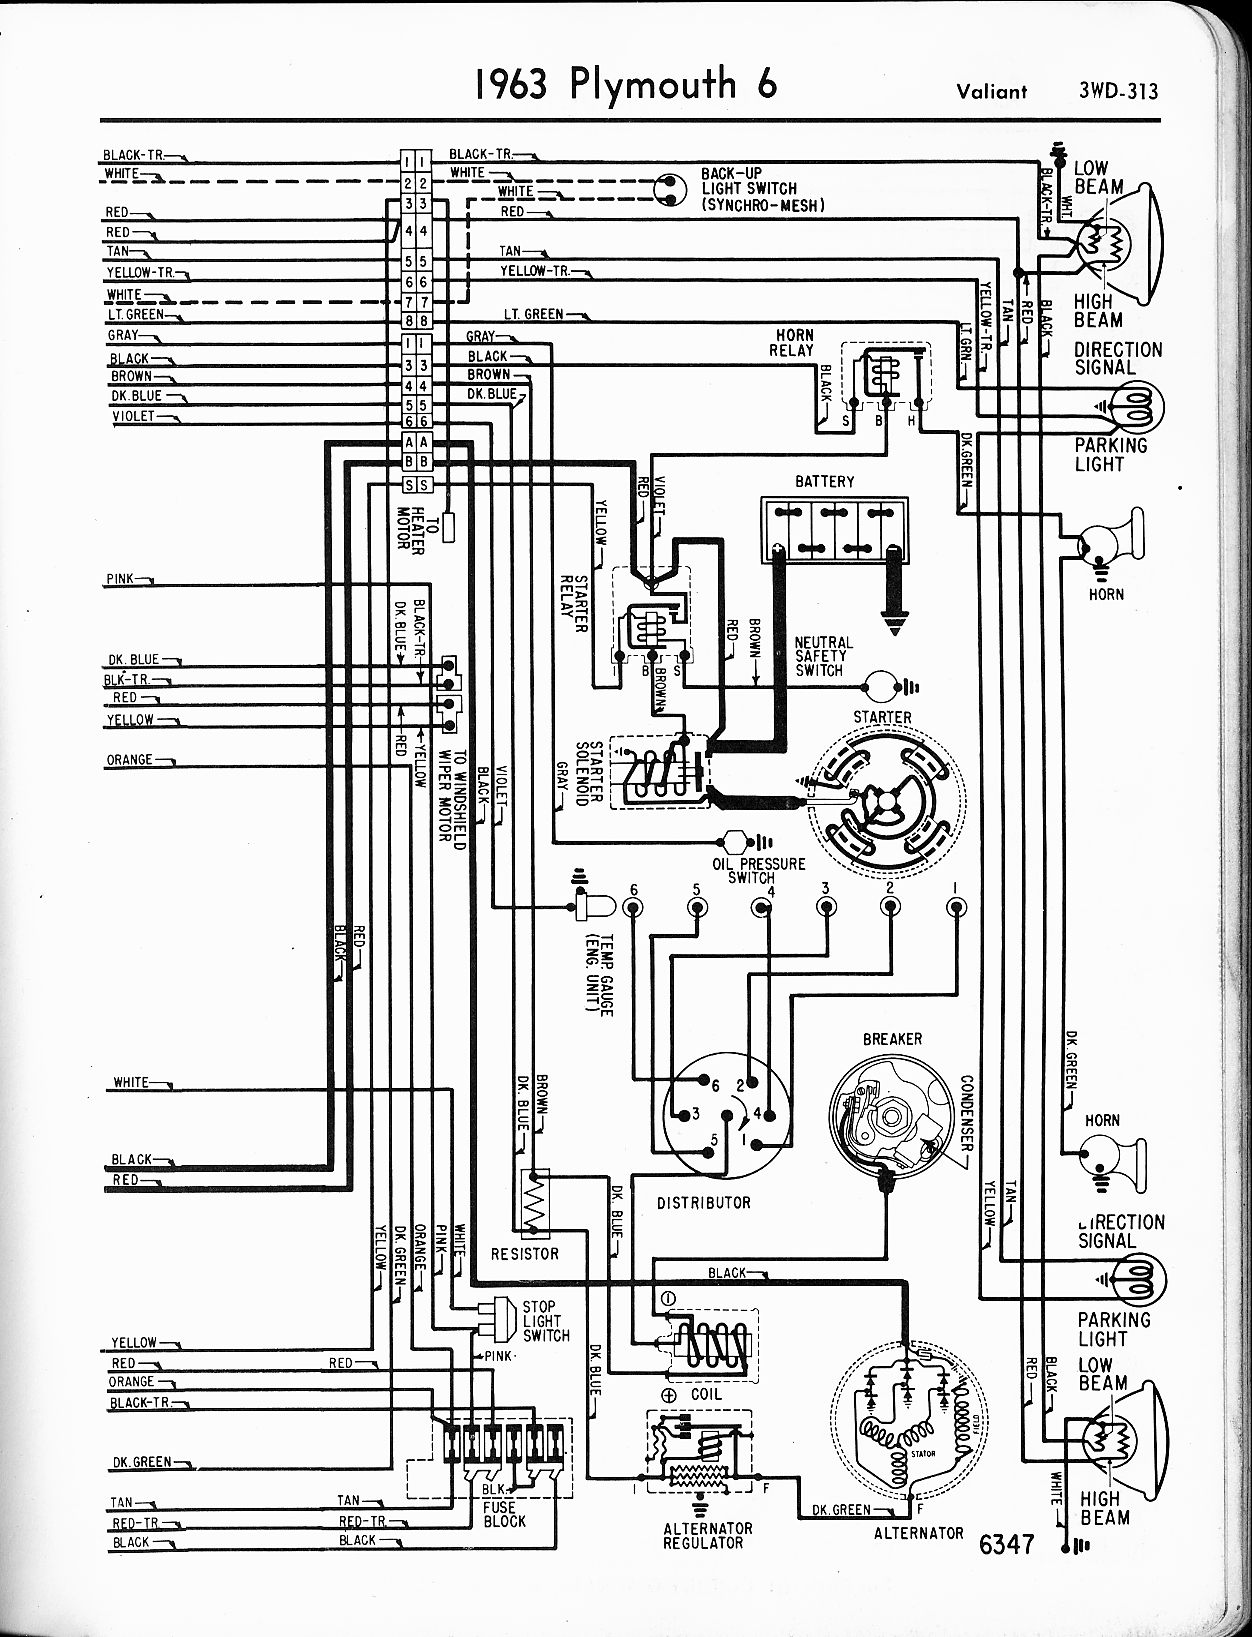 light wiring diagrams lincoln curb largest wiring diagram database u2022 rh  georgebartlett co 1999 Lincoln Navigator Engine Diagram 1965 Lincoln Wiring  ...